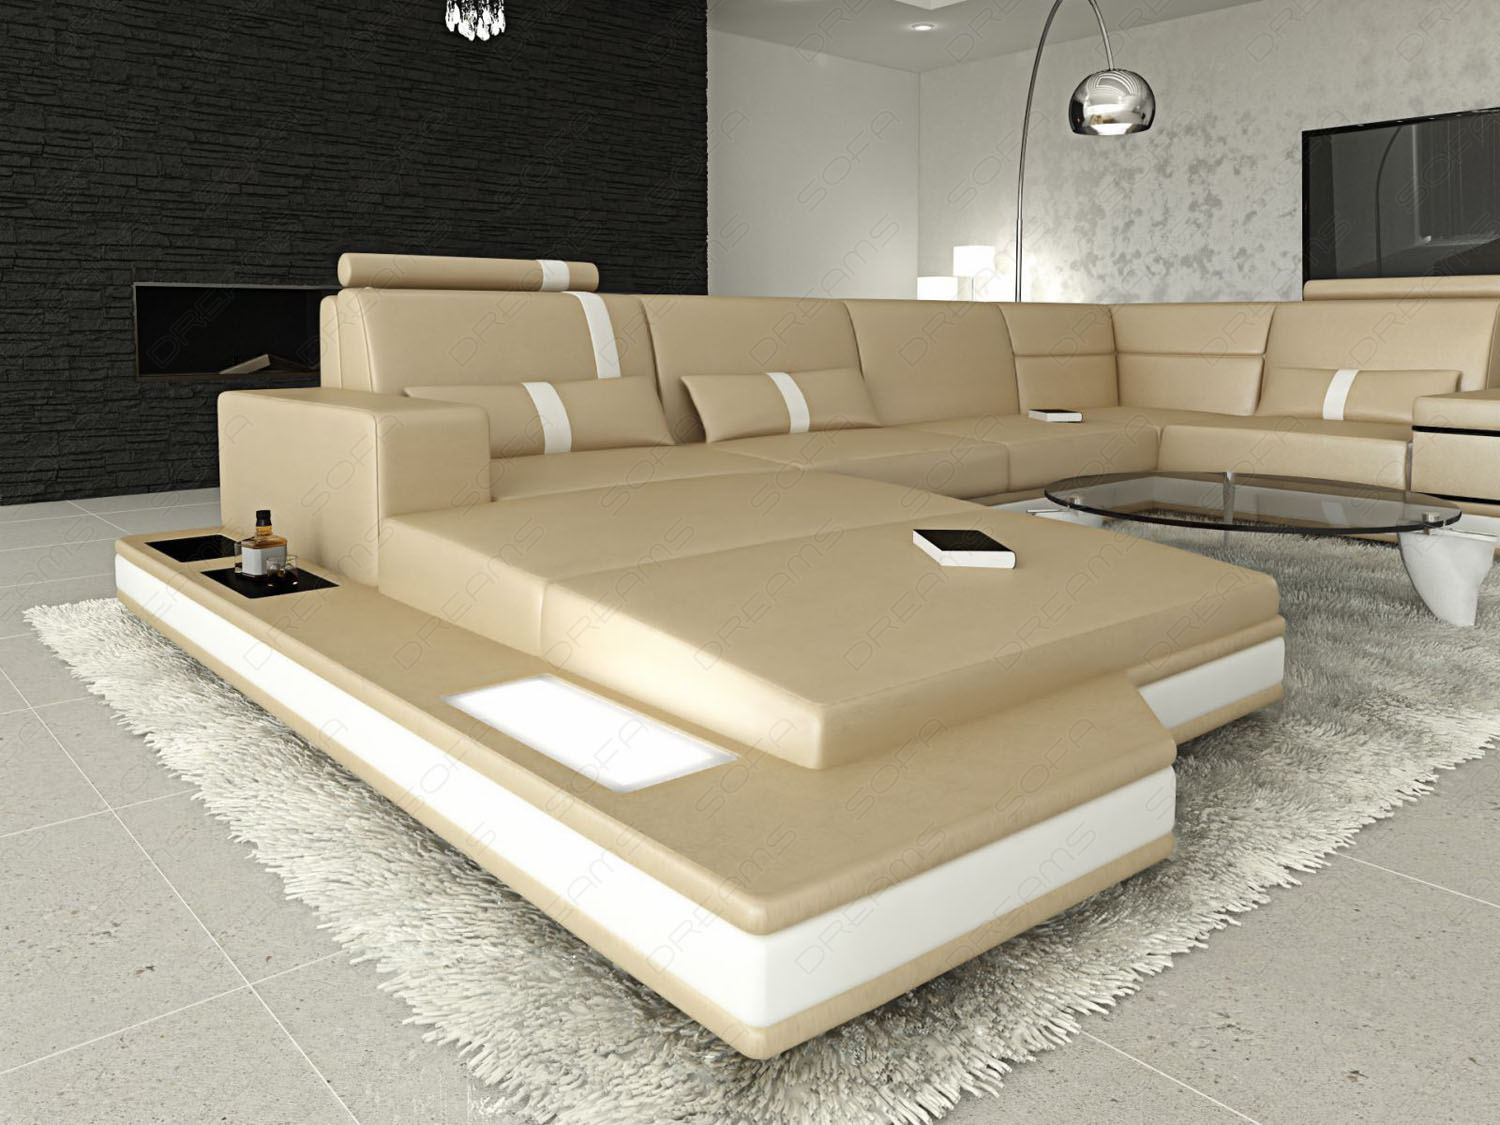 Sofa living room led messana design interior design sofa for Wohnlandschaft luxus